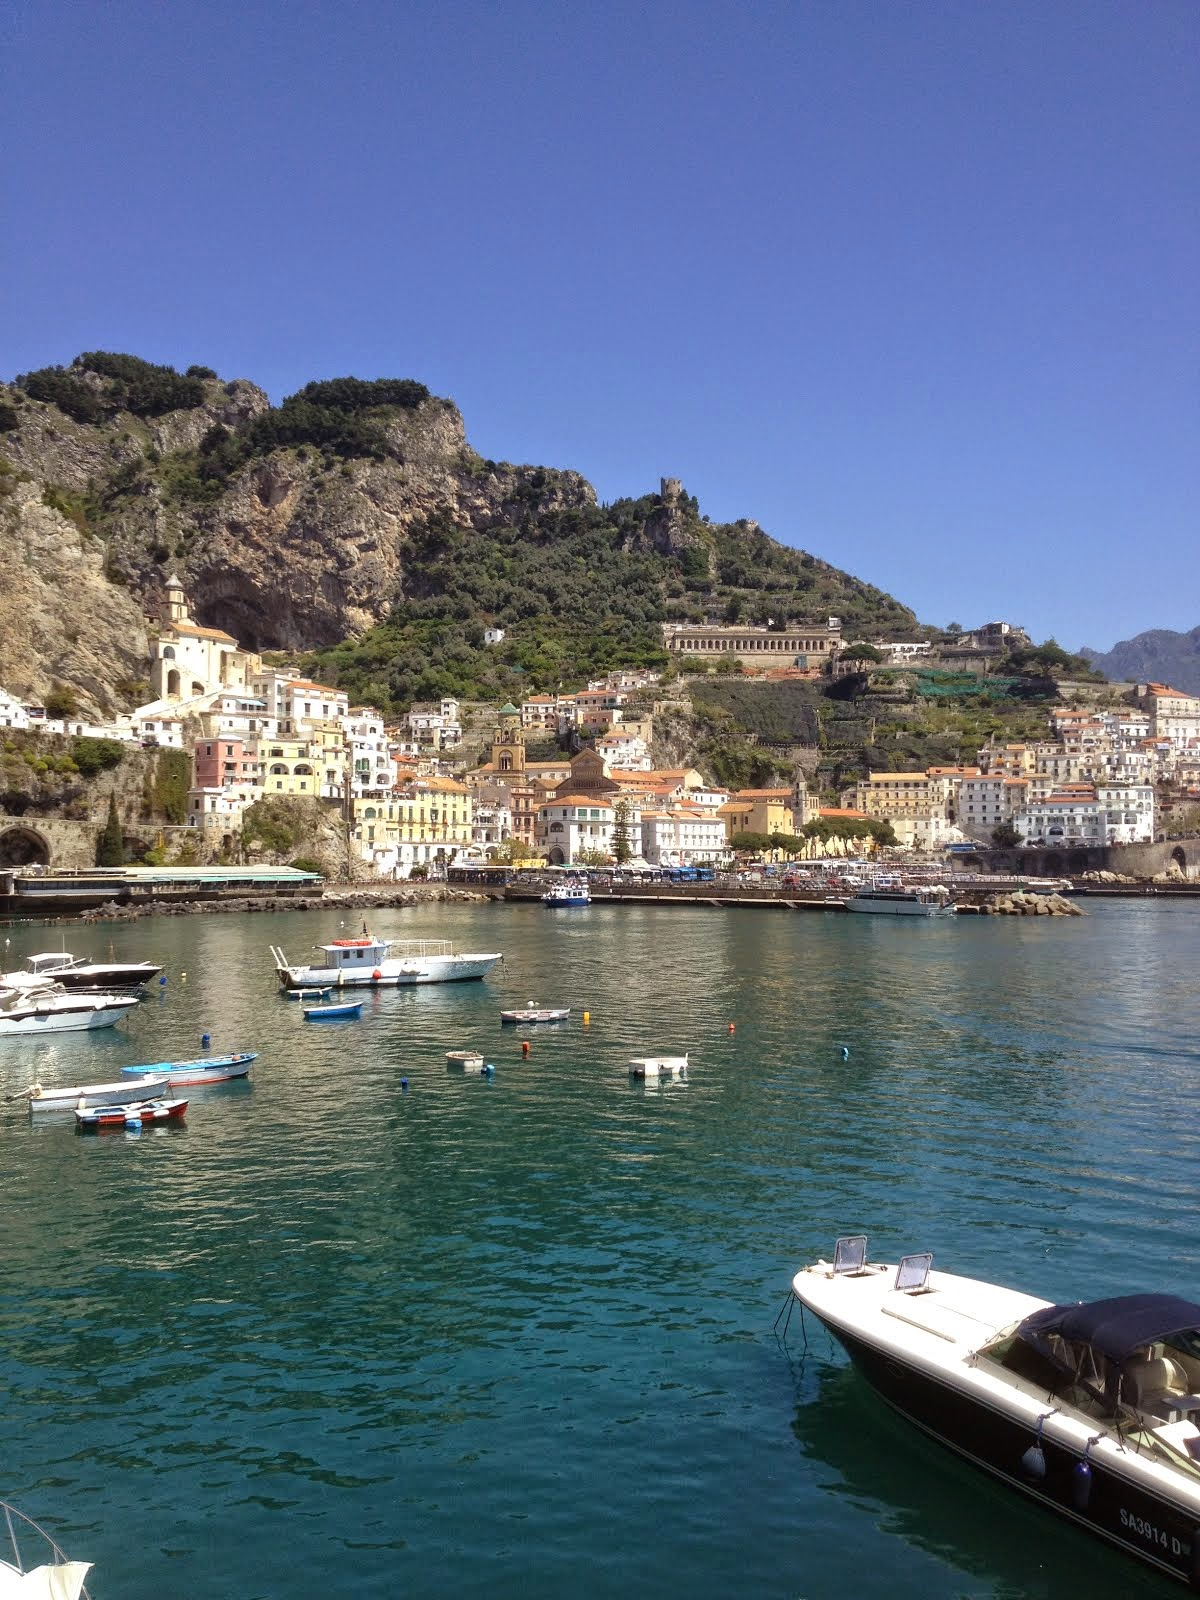 View of Amalfi from our boat